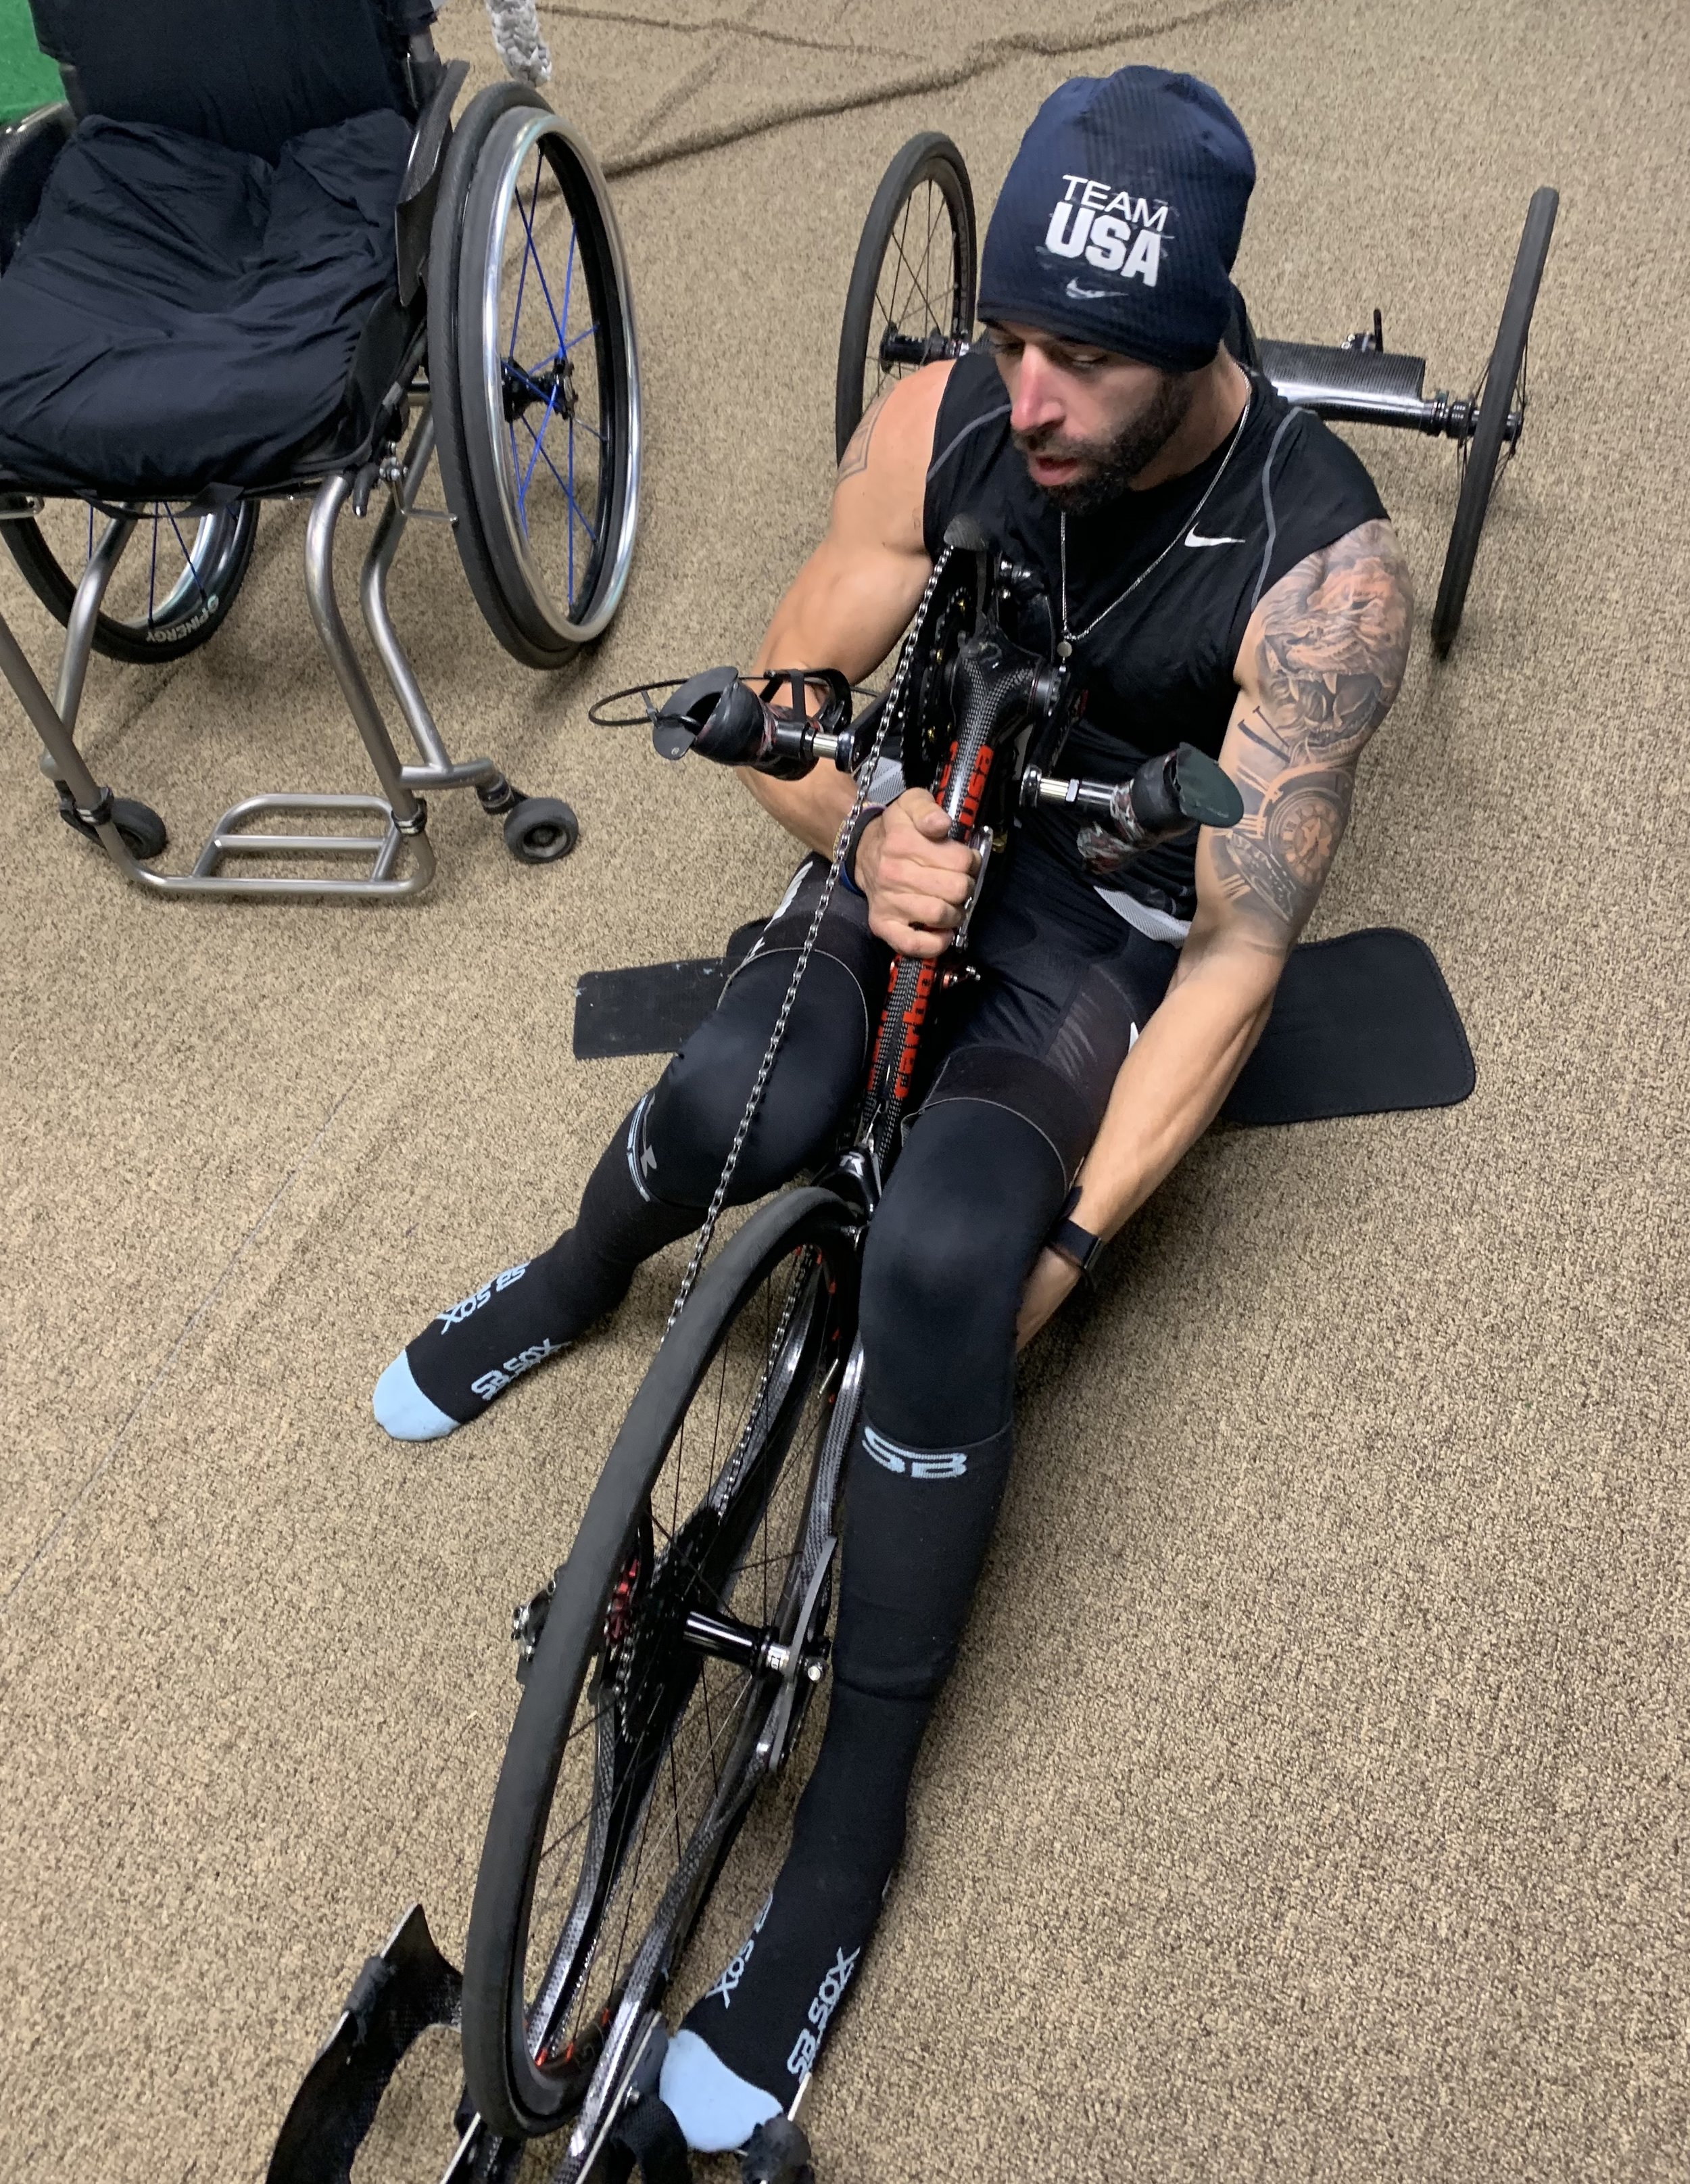 Brandon Lyons • US Paralympic Cycling Team • 2019 World Champion qualifier • getting into his custom-fitted hand cycle